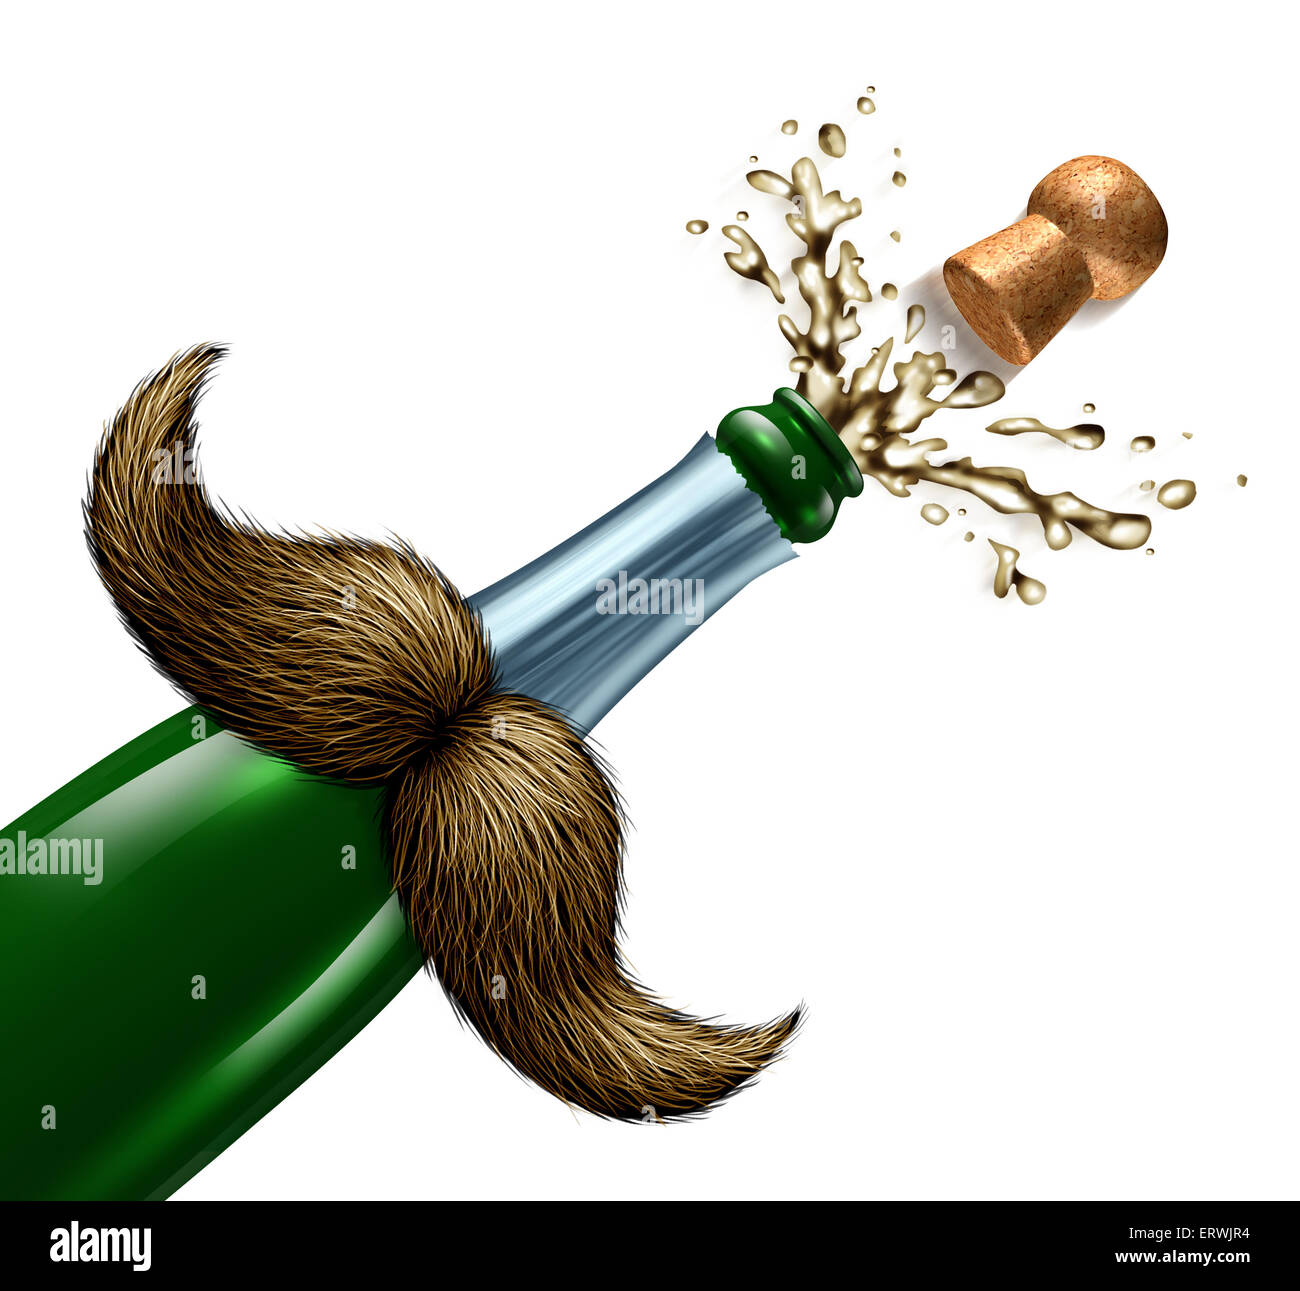 Fathers day celebration and I love you Dad party symbol with a mustache on  a champagne bottle that has a cork and - Stock Image